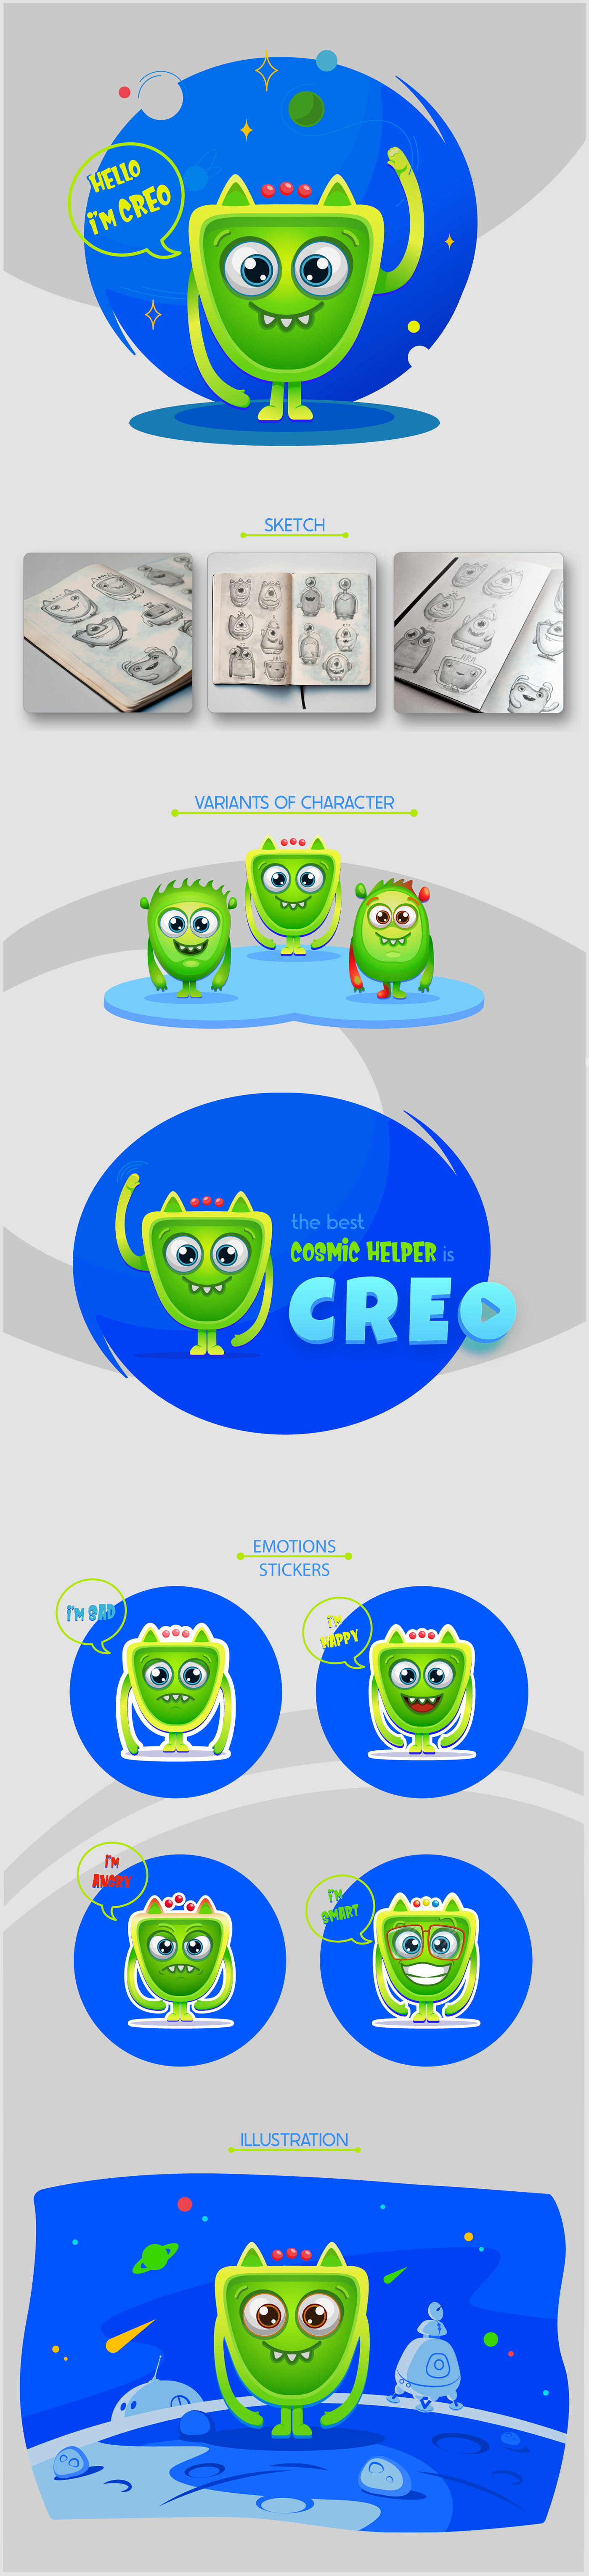 adobe illustrator brand and identity bright illustration Character design  cute character educational design emotions flat design ILLUSTRATION  STIKERS